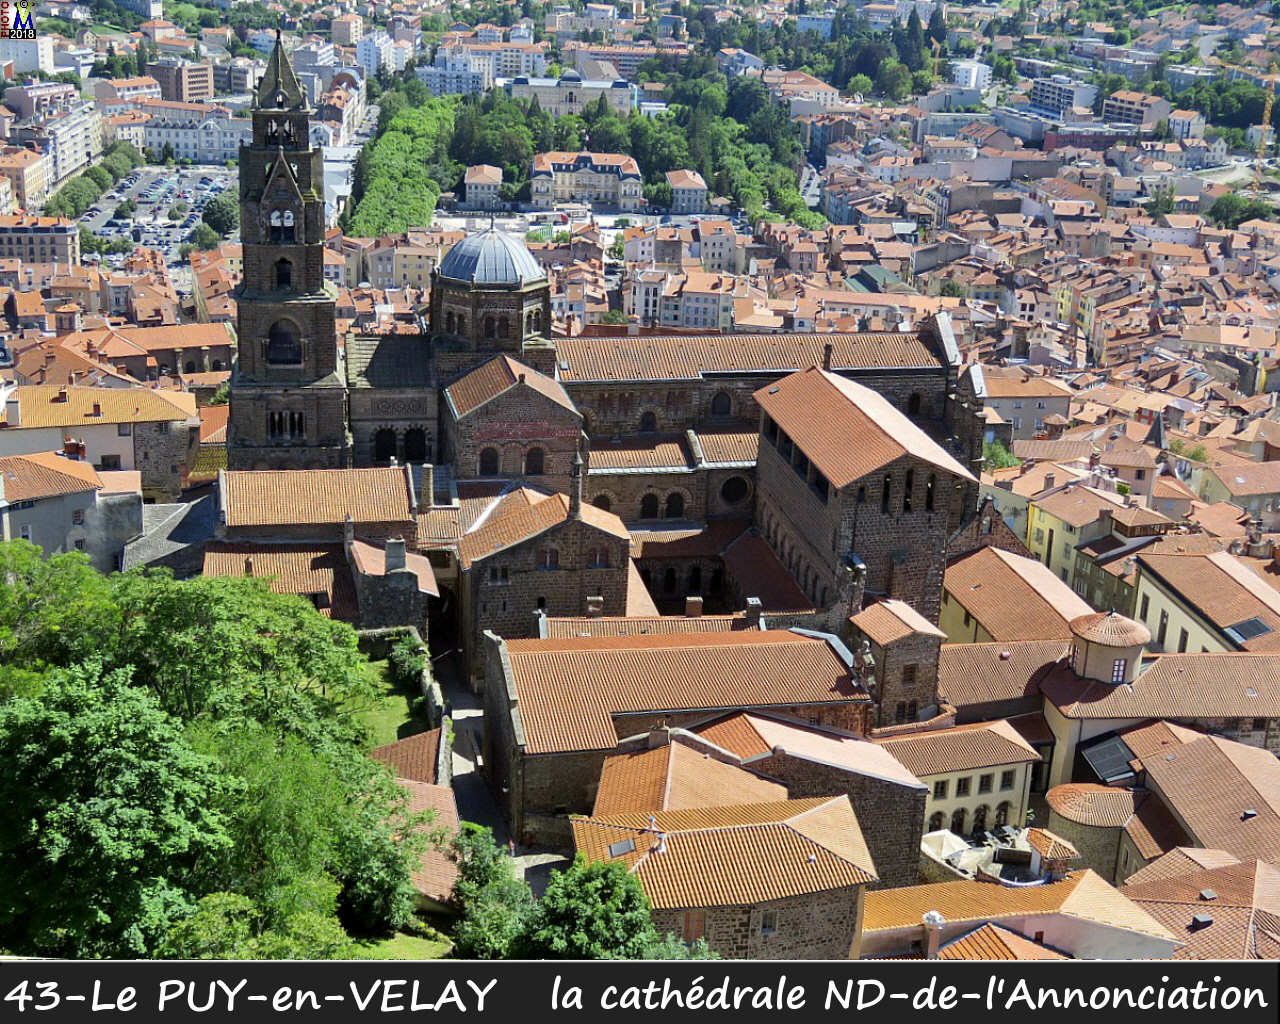 43PUY-EN-VELAY_cathedrale_103.jpg